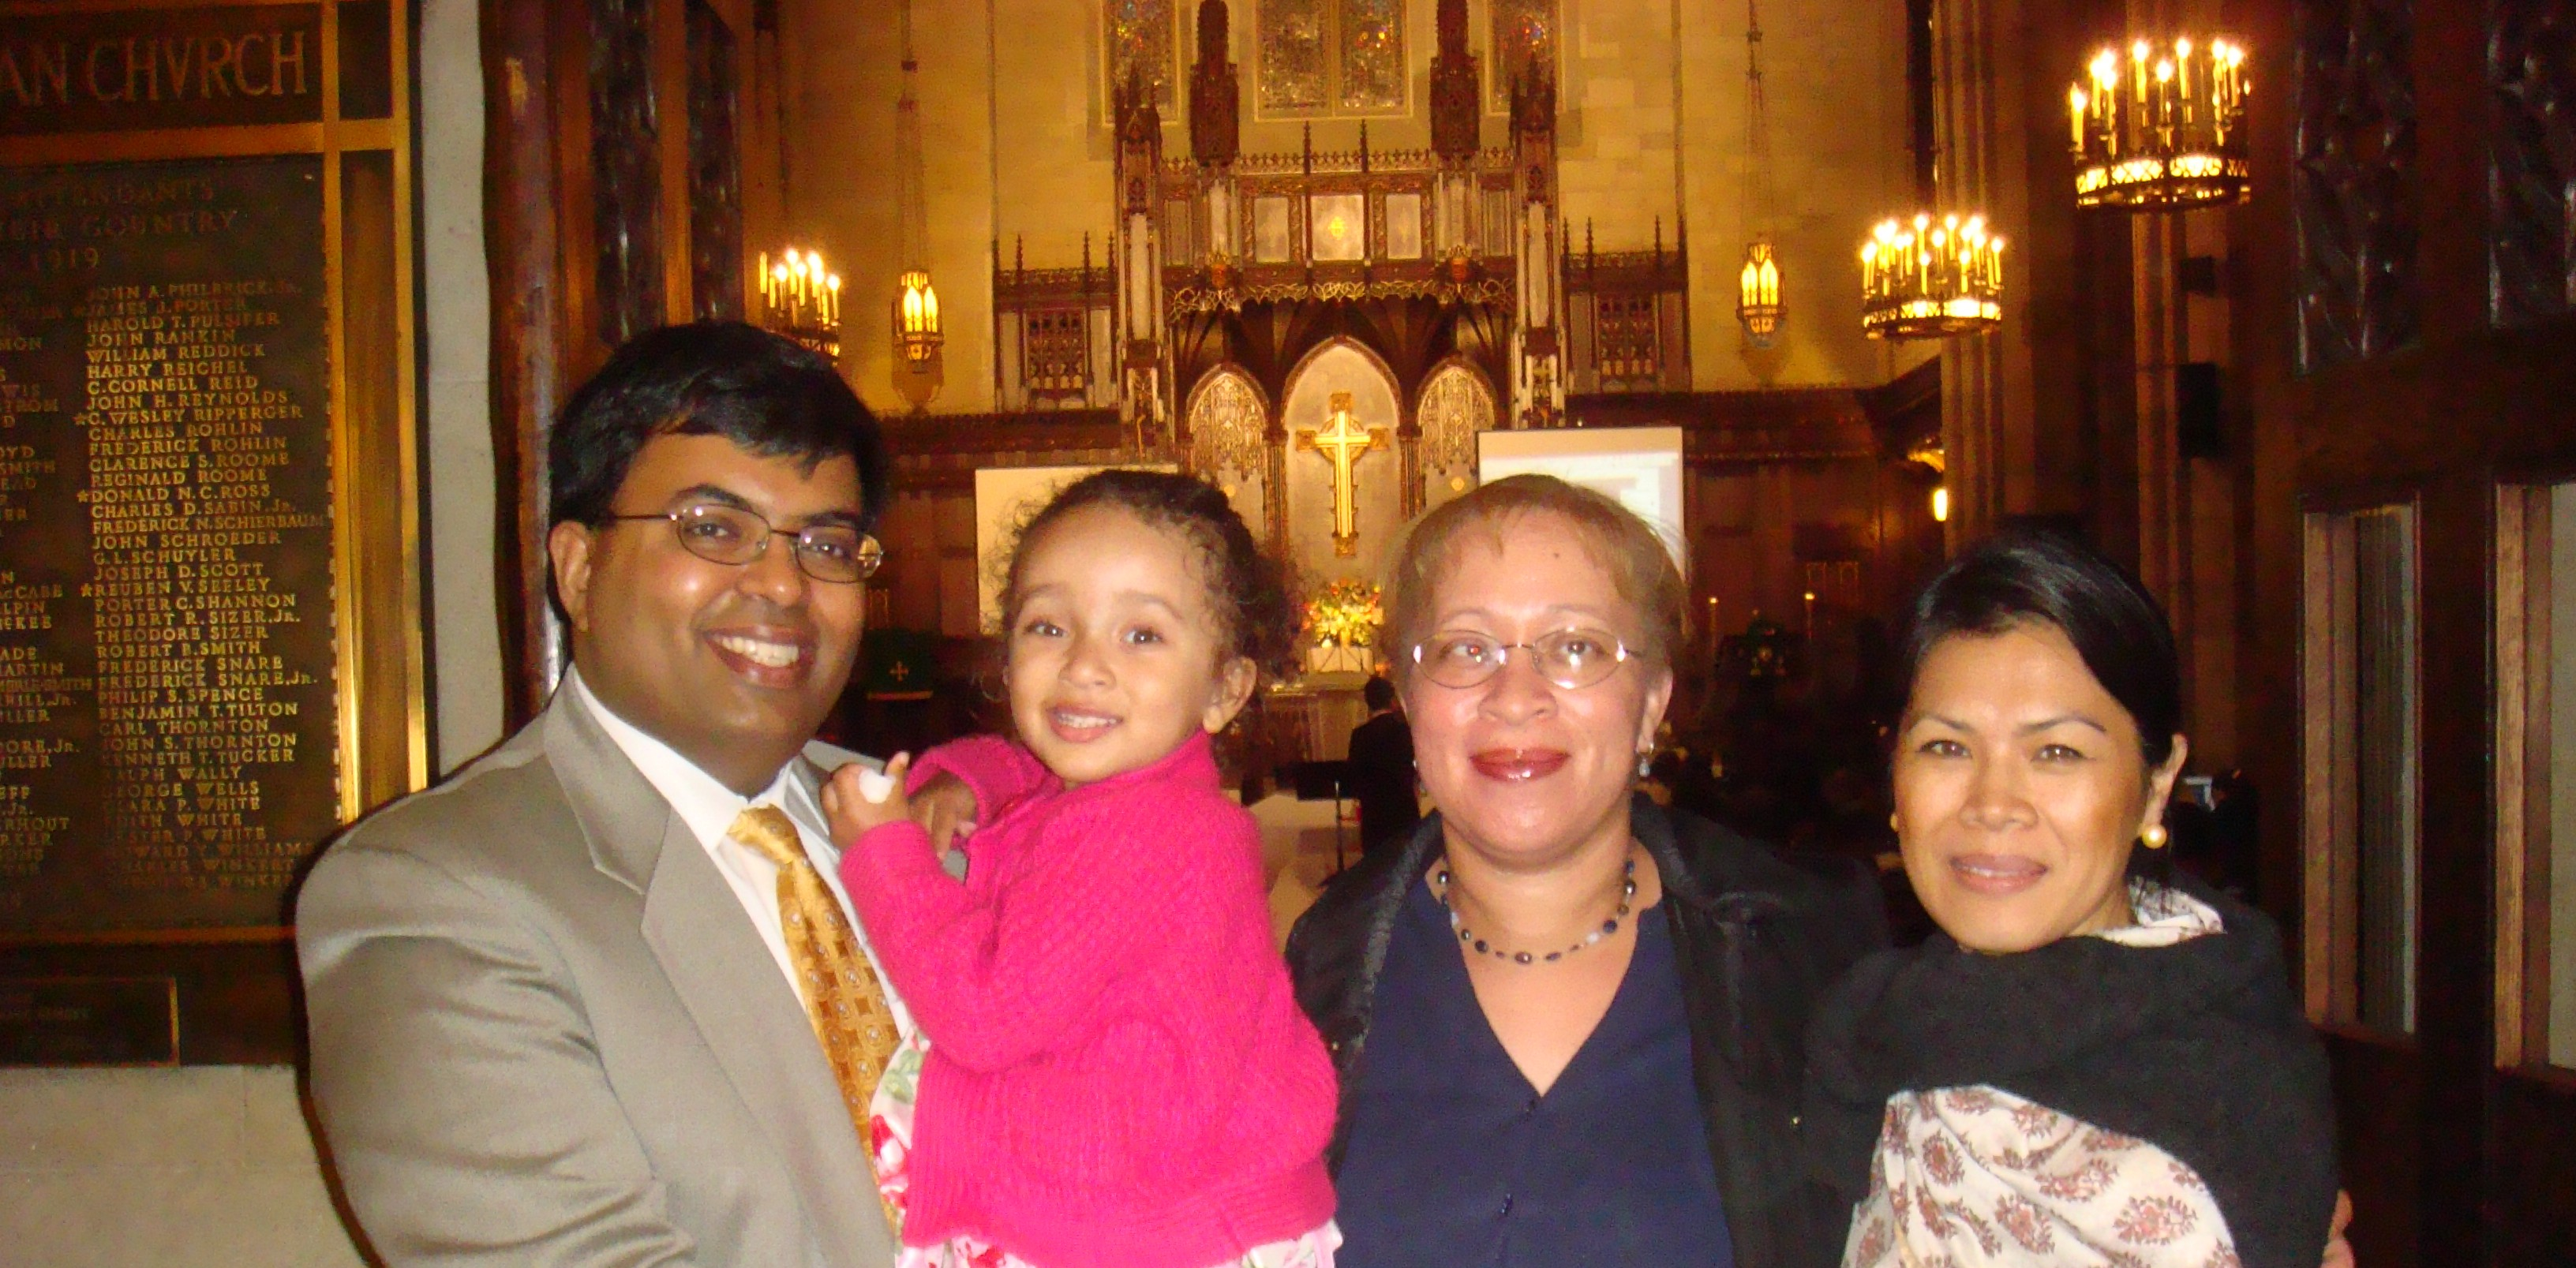 Theary Seng with Sybil, Kate and Indrajit Ponnambalam, Easter Service Central Park, April 2010